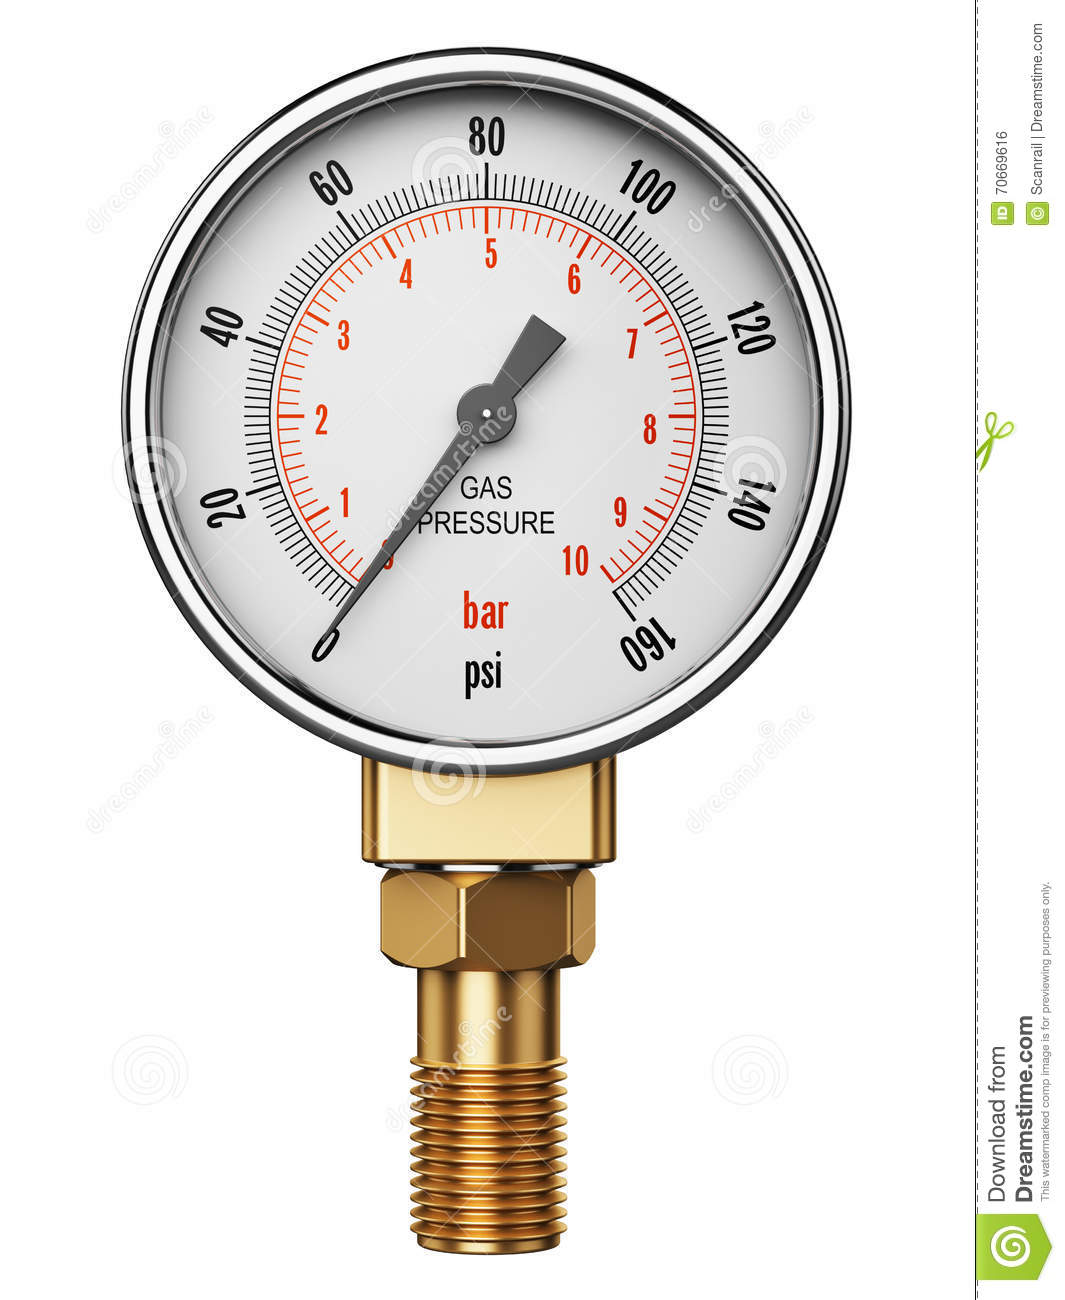 High Pressure Industrial Gas Gauge Meter Or Manometer Stock ...